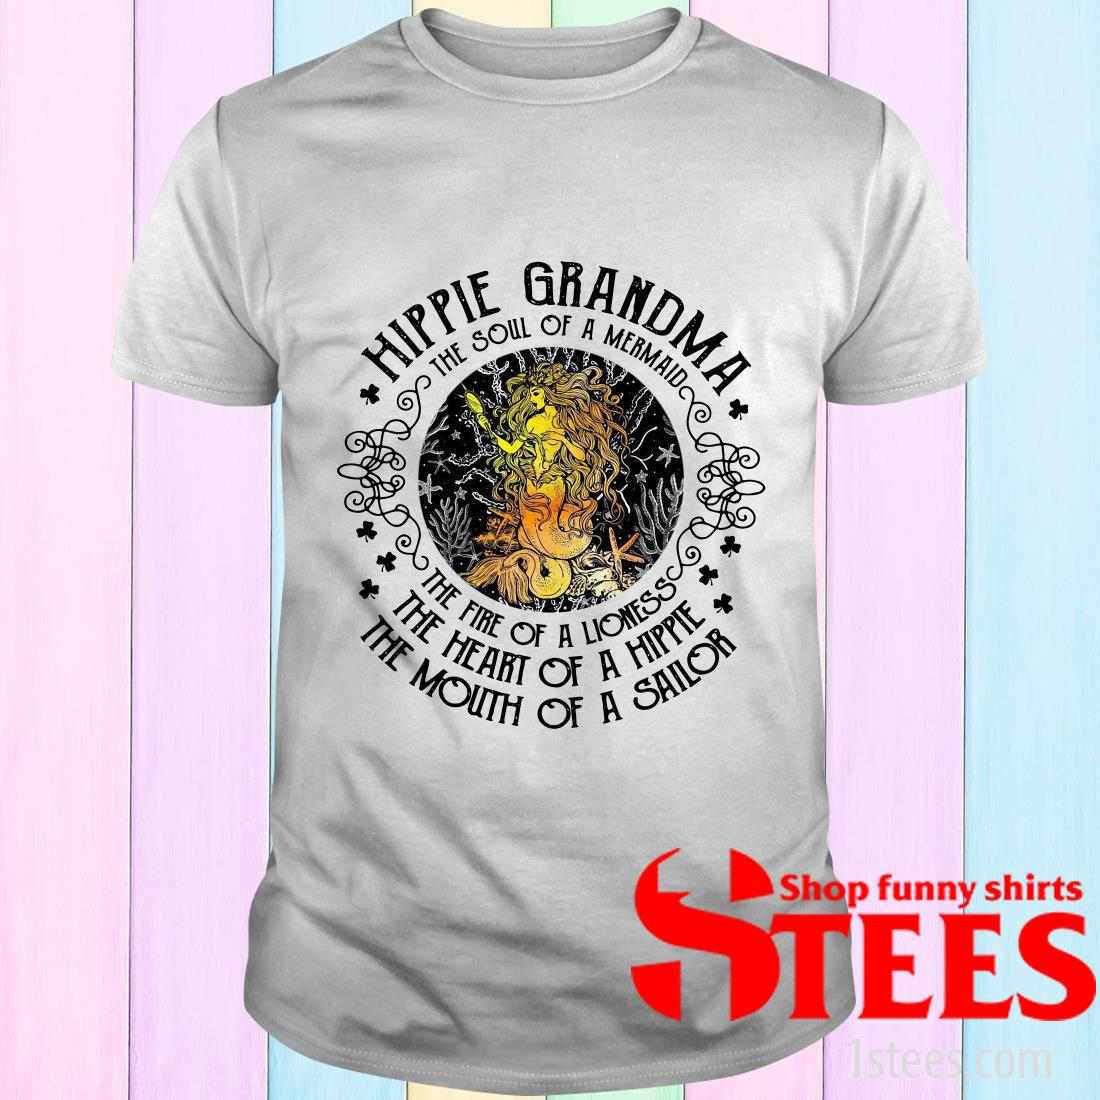 Hippie Grandma The Soul Of A Mermaid The Fire Of A Lioness The Heart Of A Hippie The Mouth Of A Sailor T-Shirt